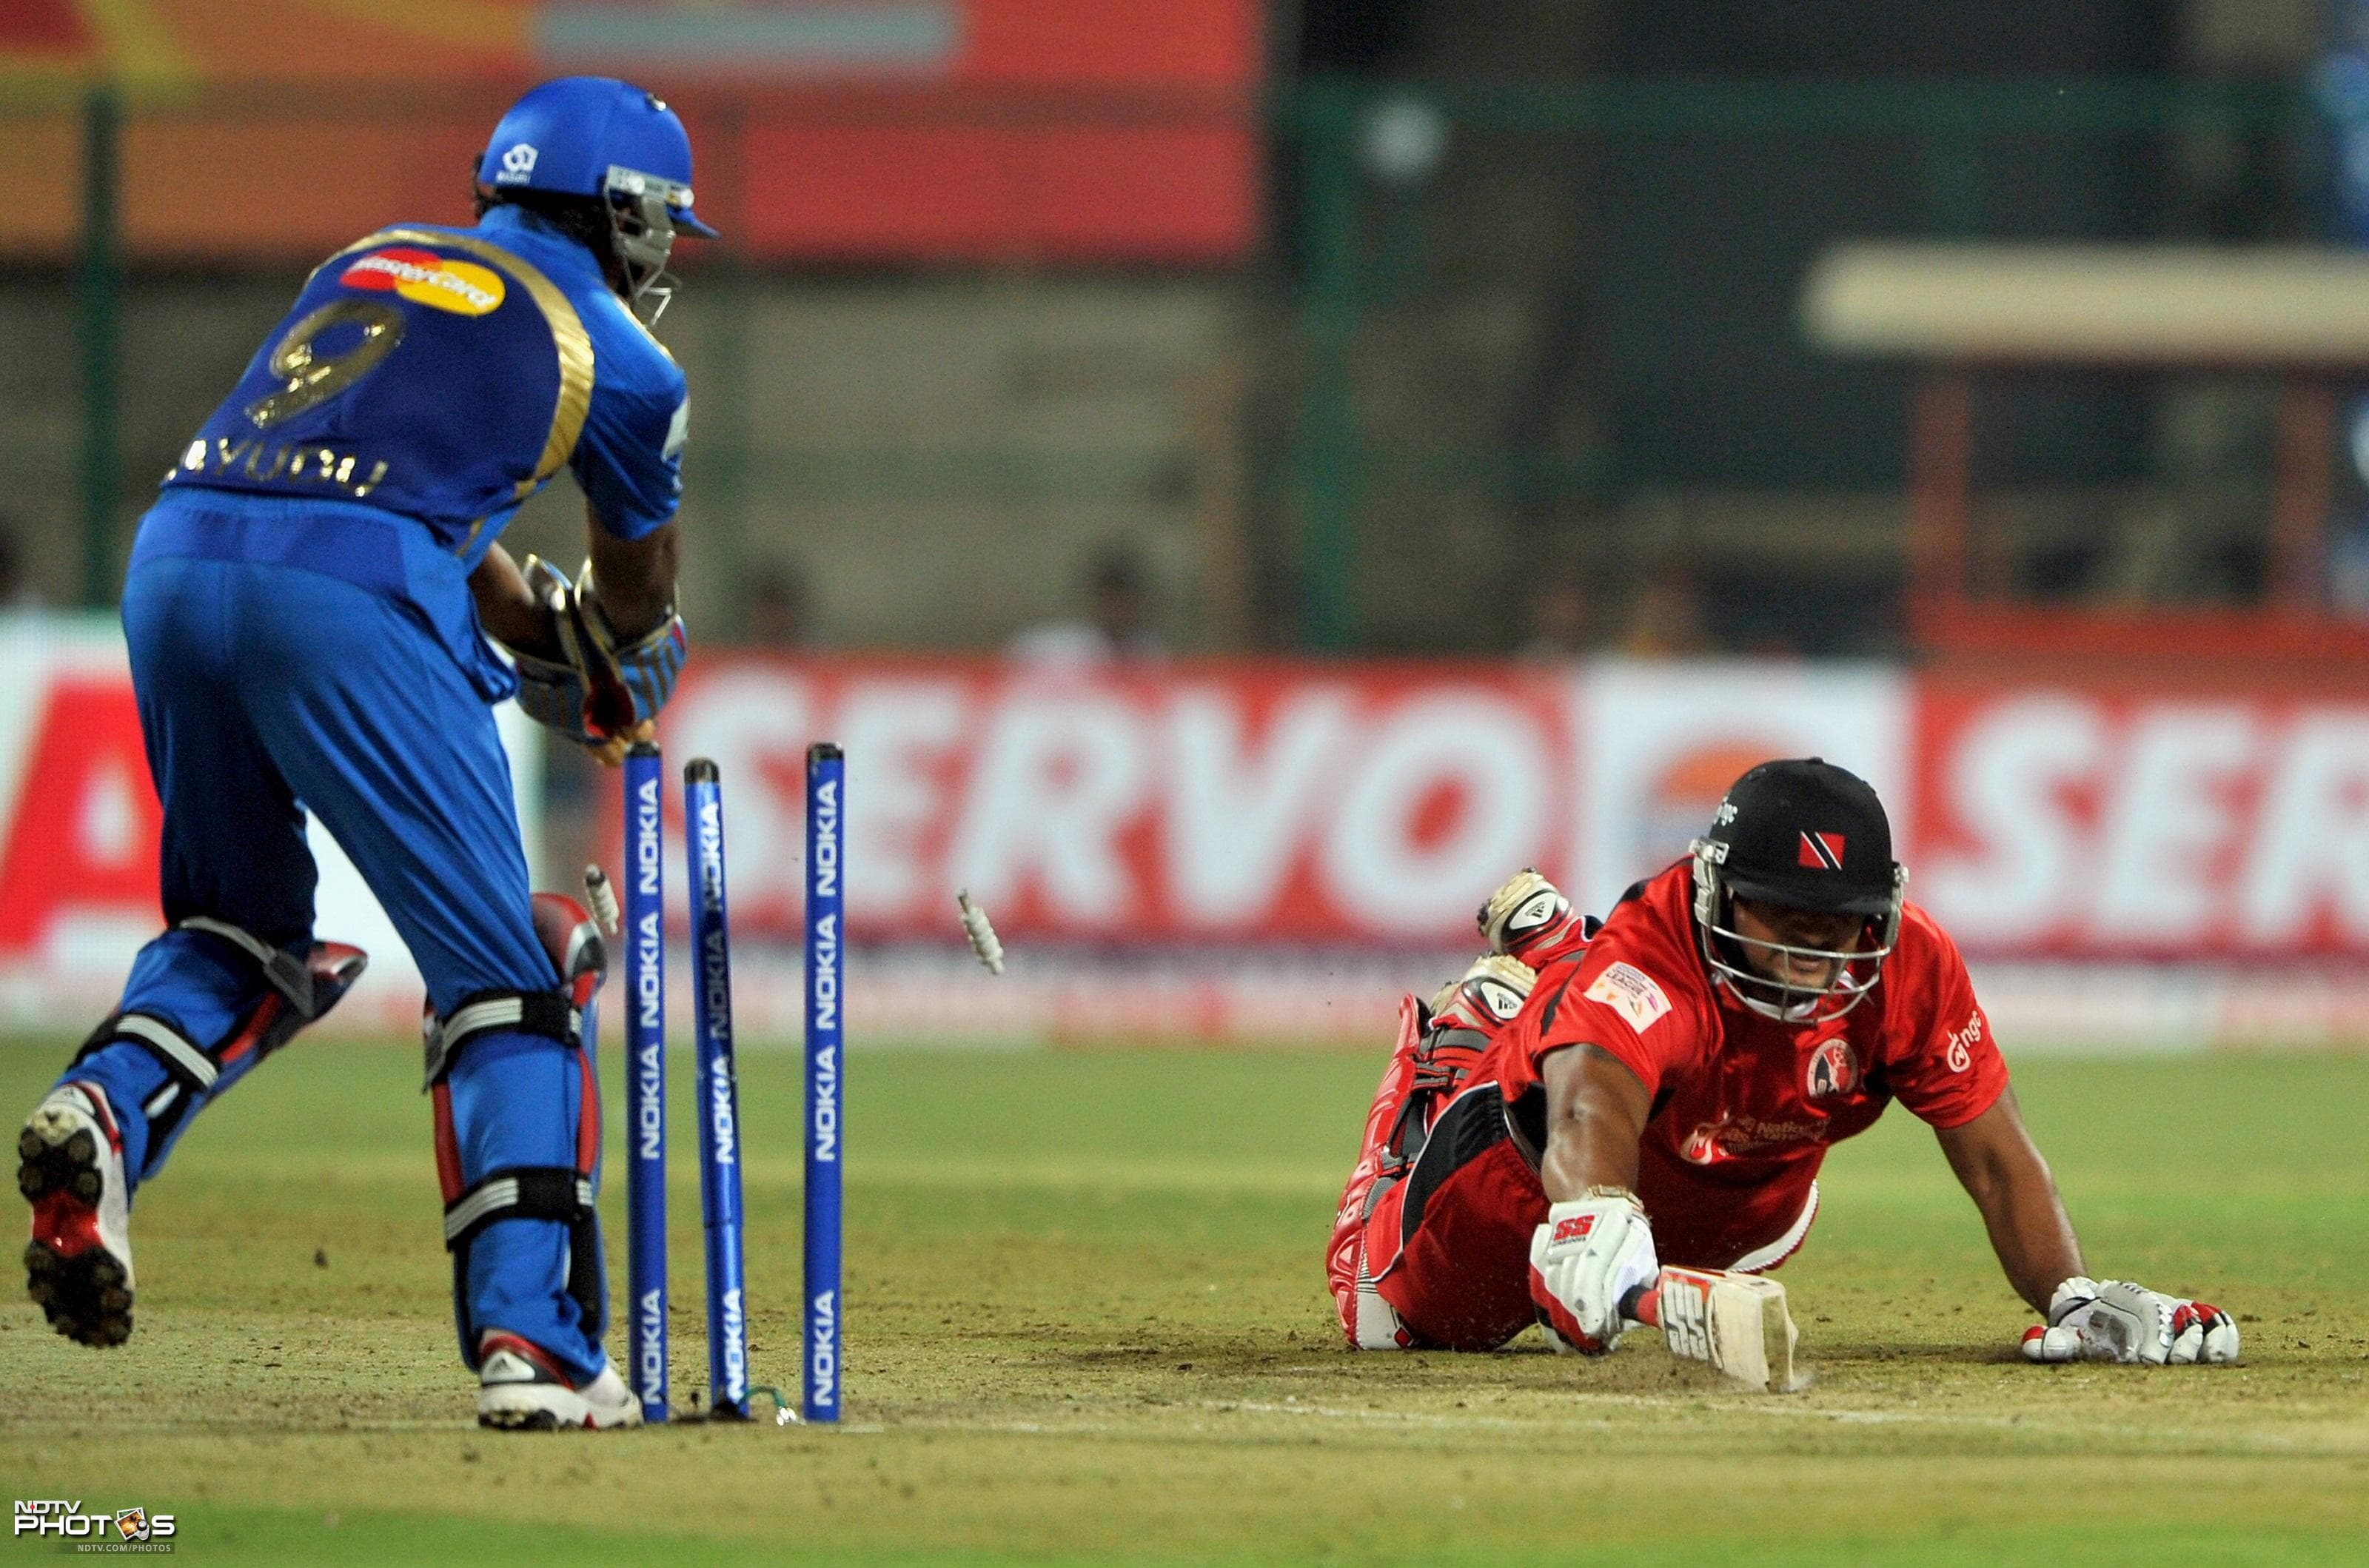 Ravindranath Rampaul makes a vain attempt to reach the crease while being stumped out by wicketkeeper Ambati Rayudu during the Champions League Twenty20 cricket Group A match between Mumbai Indians and Trinidad and Tobago at the M. Chinnaswamy Stadium in Bangalore. (AFP Photo)